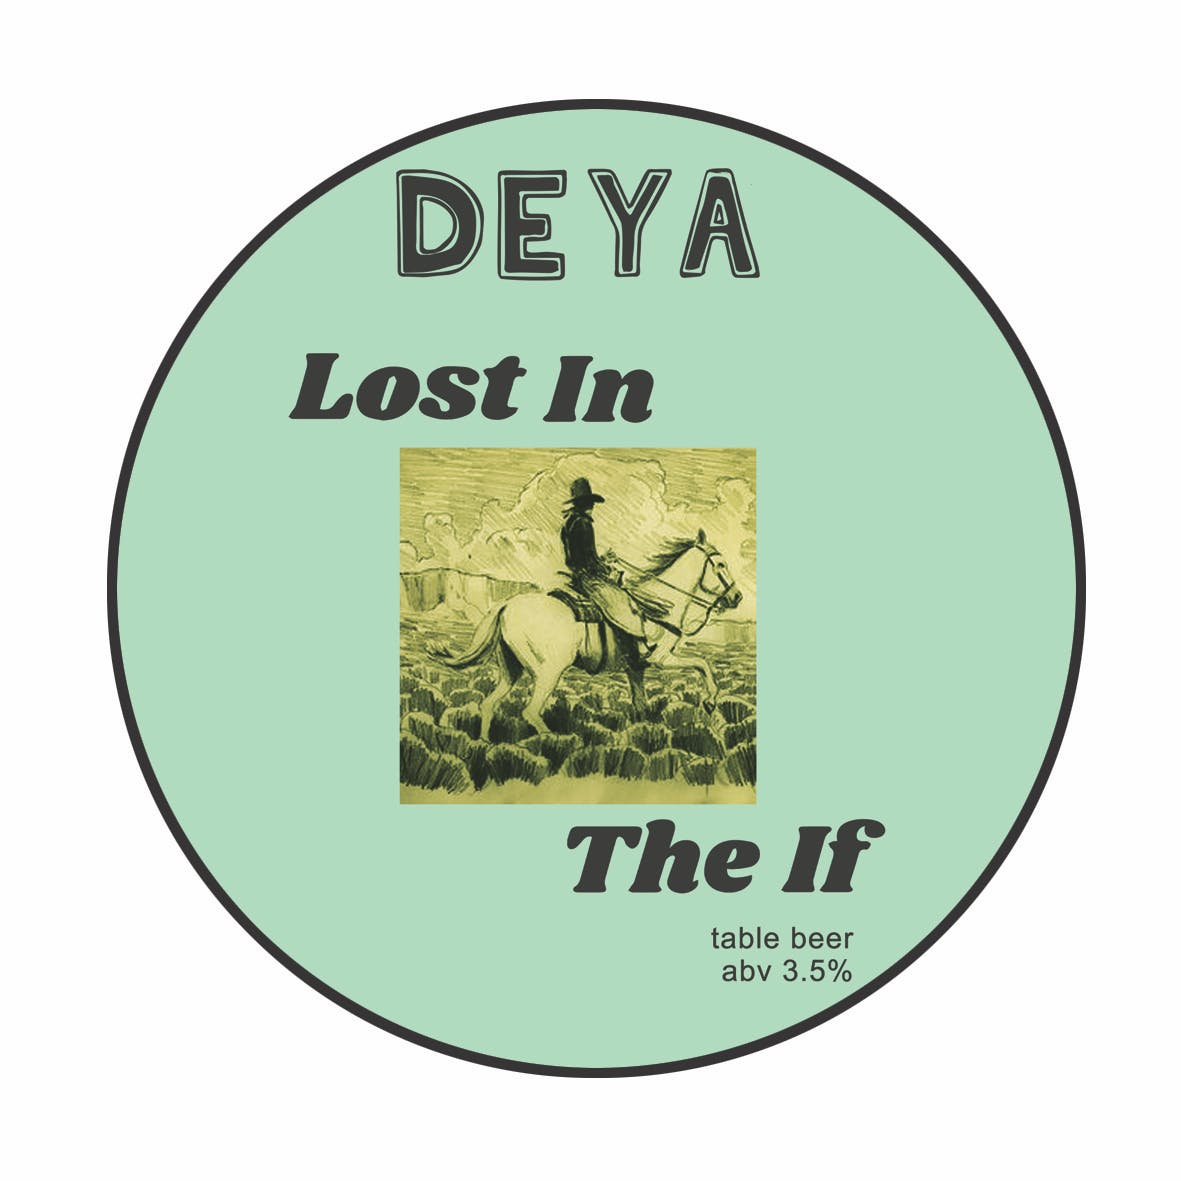 DEYA Lost In The If